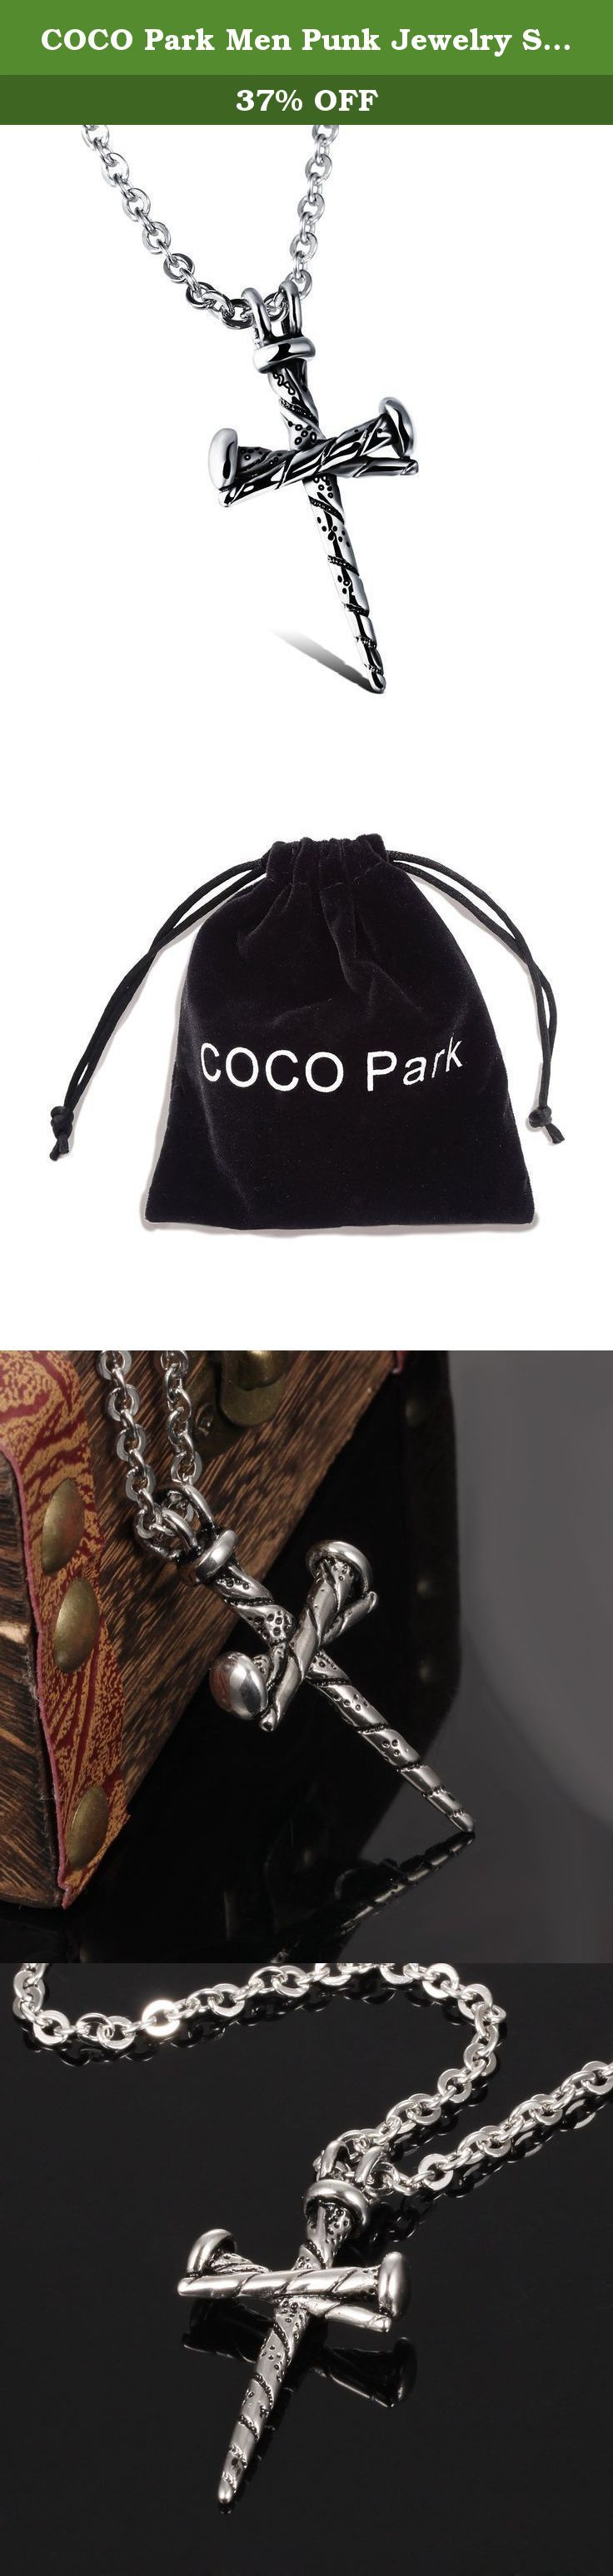 "COCO Park Men Punk Jewelry Stainless Steel Nail Cross Charm Pendant Necklace with Solid Chain 23 5/8"". Description: - As professional jewelry supplier, COCO Park assure you 100% brand new item and high quality stainless steel. - Last longer than other material jewelry. Anti-perspiration, waterproof, durable, fadeless, allergy free. - Contains no nickel. It does no harm to our health. - Can be paired with any style of cloth, casual, business and sport. - New design and unique meaning, make..."